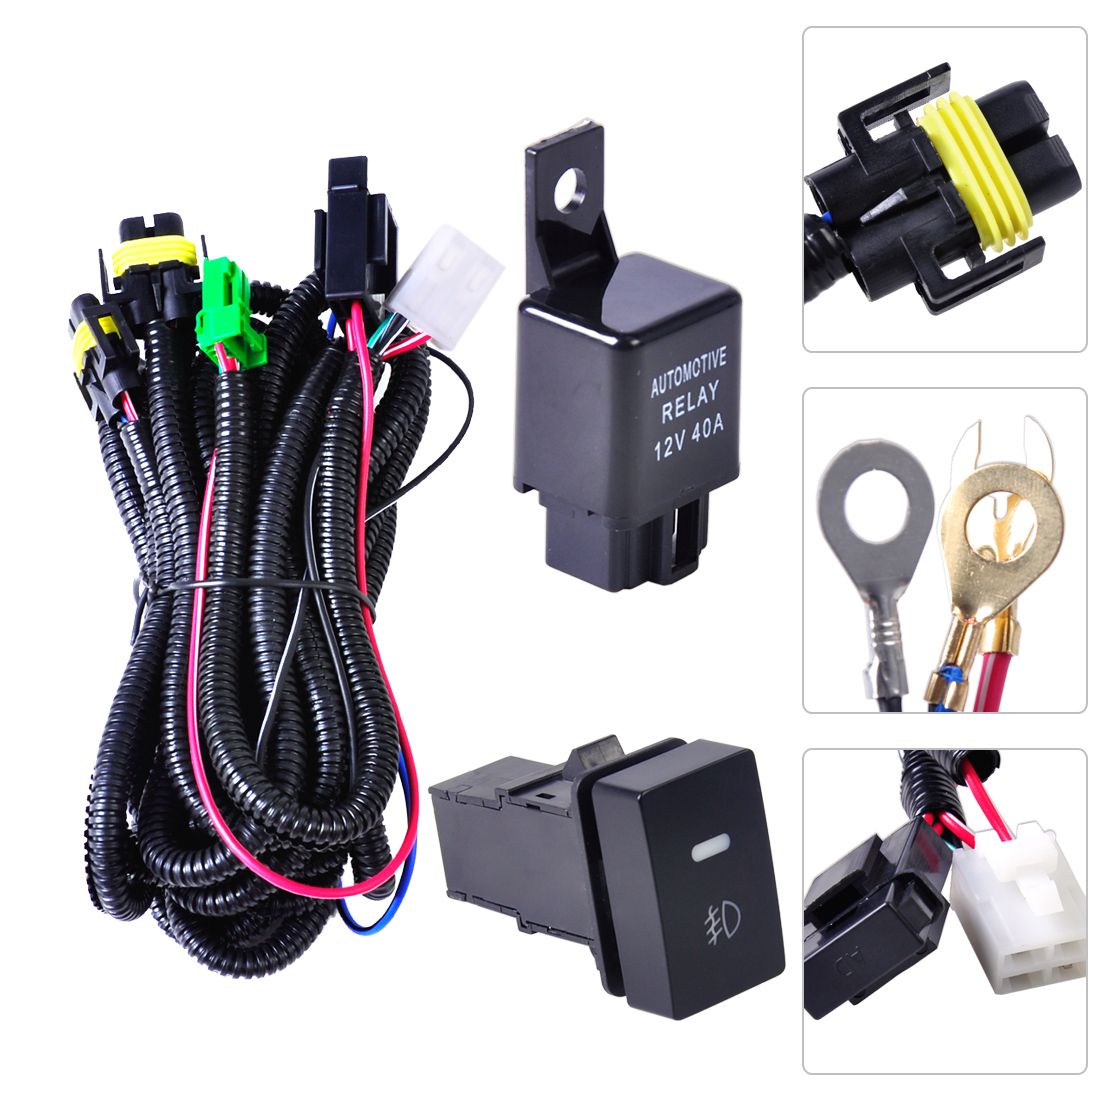 For Ford Focus Acura Nissan Wiring Harness Sockets Switch H11 An Product Photo Show